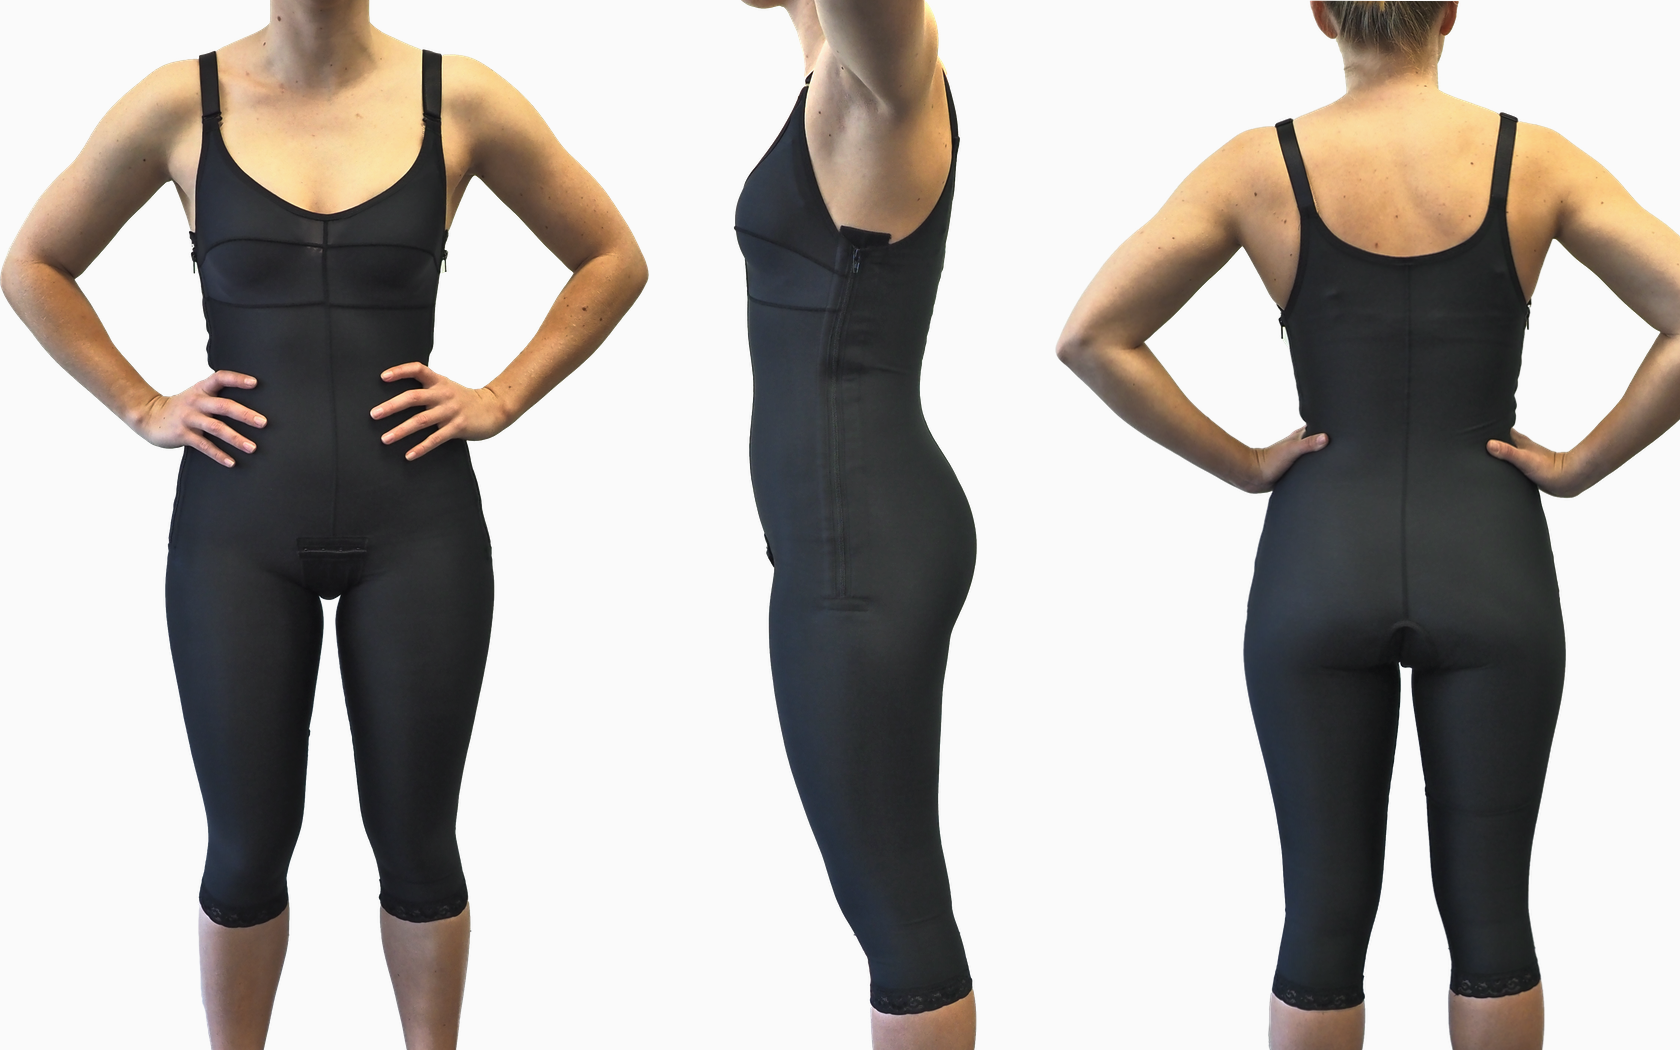 Full Body Compression Garment - Below Knee